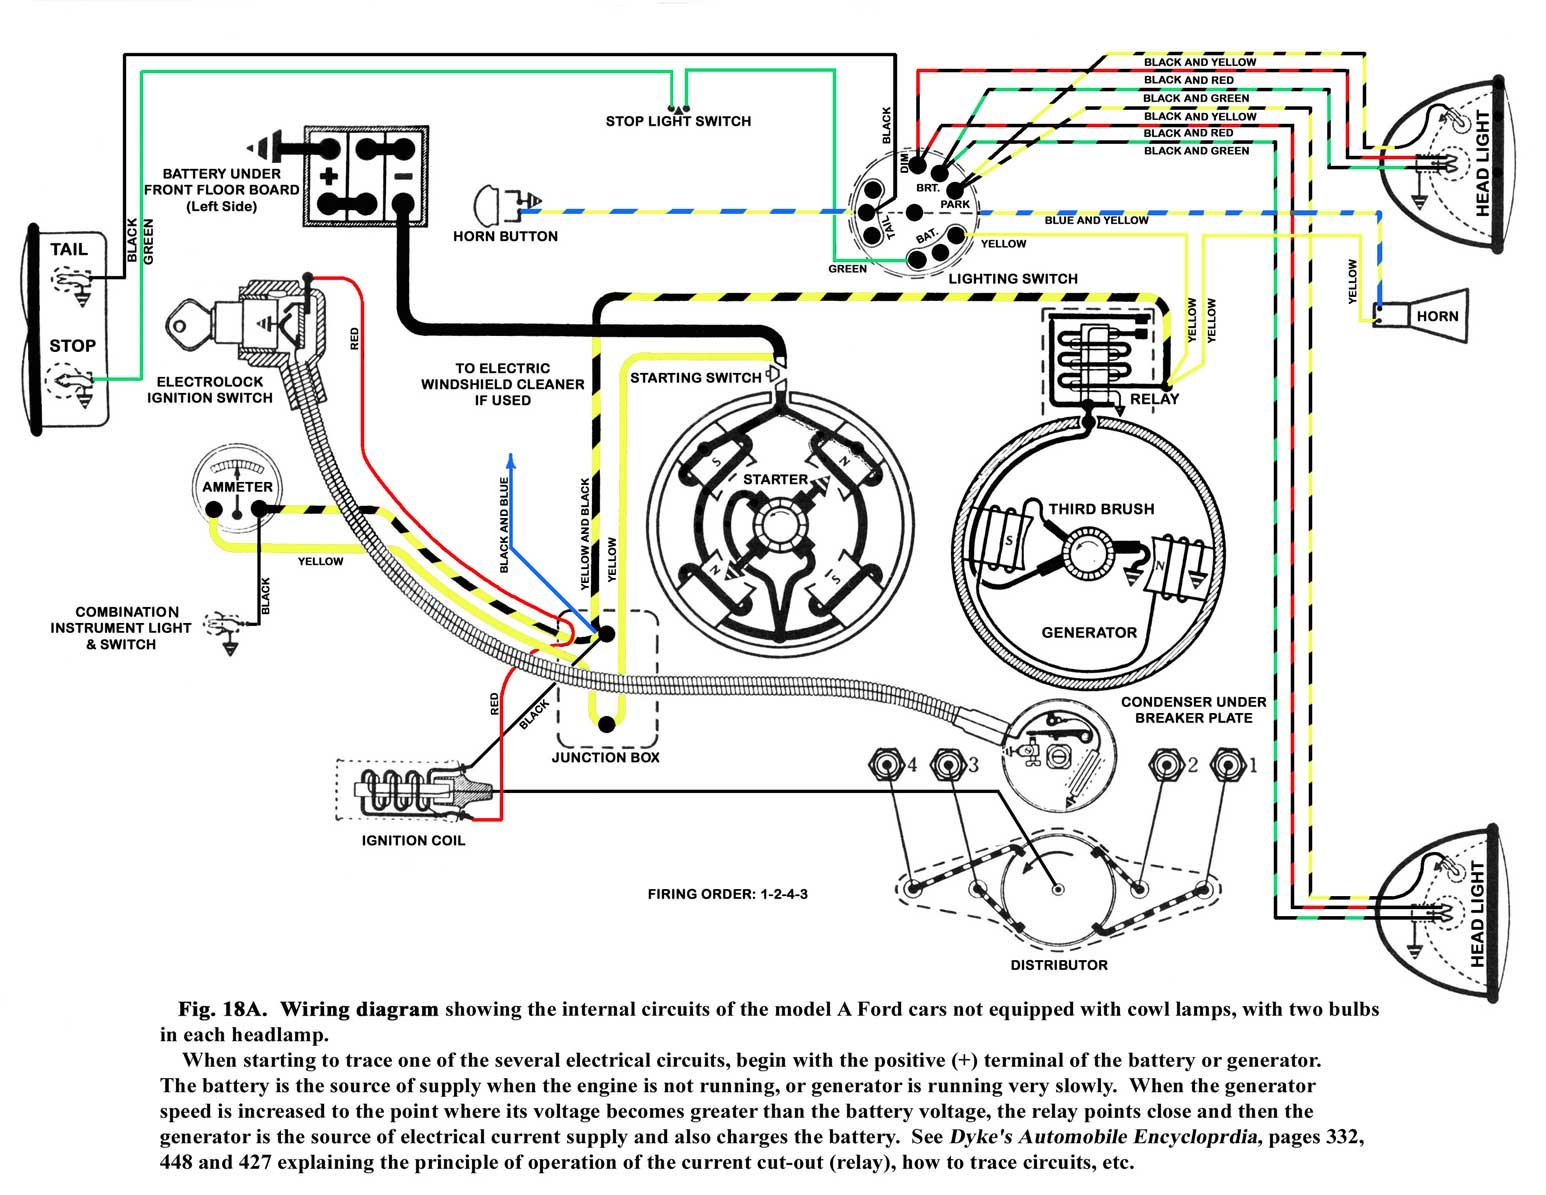 wiring diagramcolor2sm?w=240 model a wiring diagram sacramento capitol a's ford model a wiring diagram at readyjetset.co